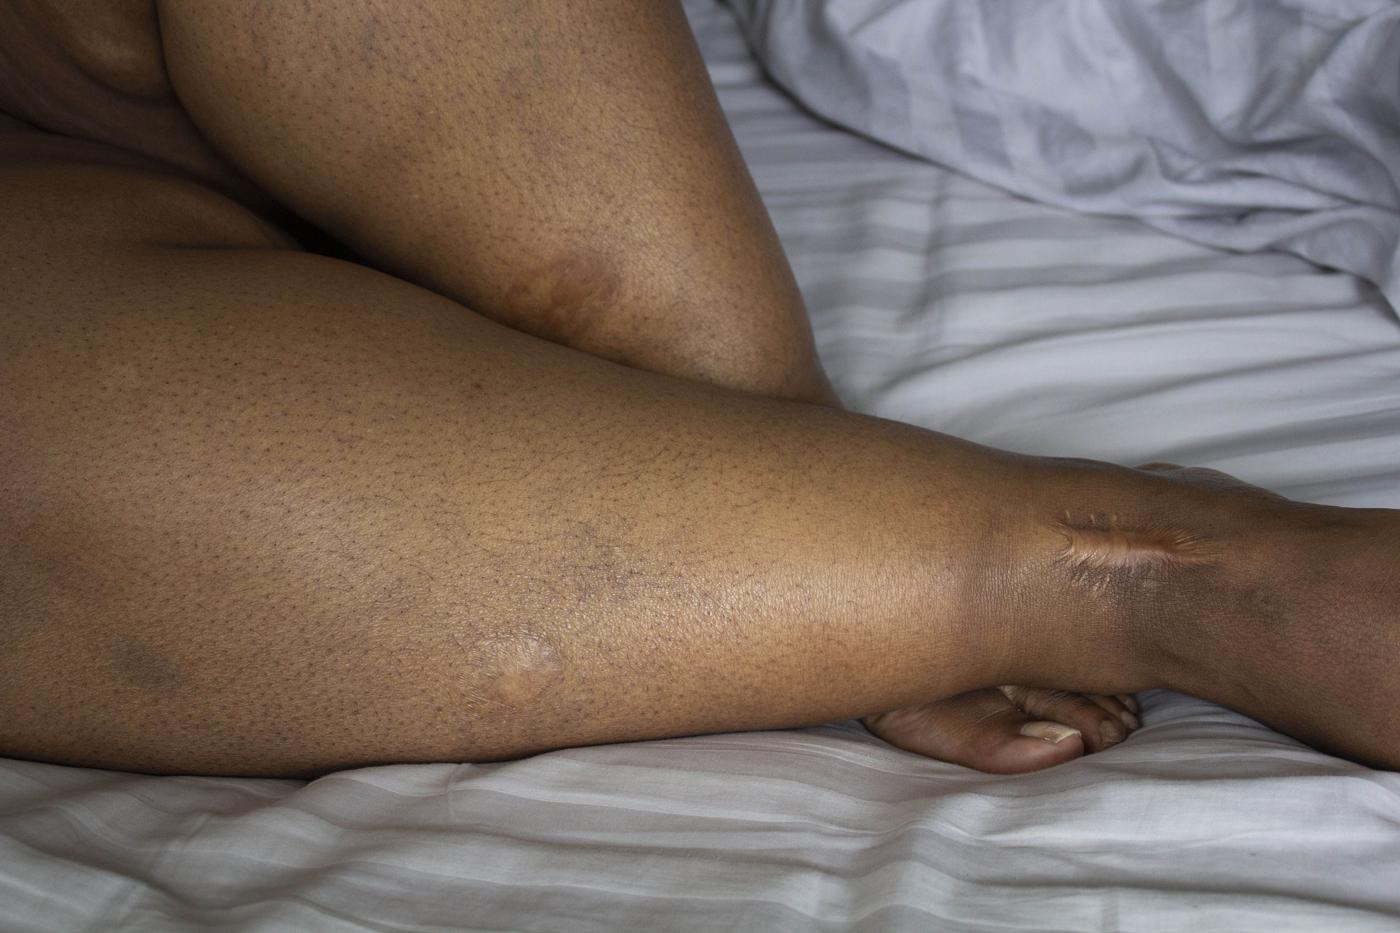 Color photograph of the lower part of a woman's legs. She is an African American woman with thick calves and three large scars, two circular ones on her calves and one long deep scar on her ankle.